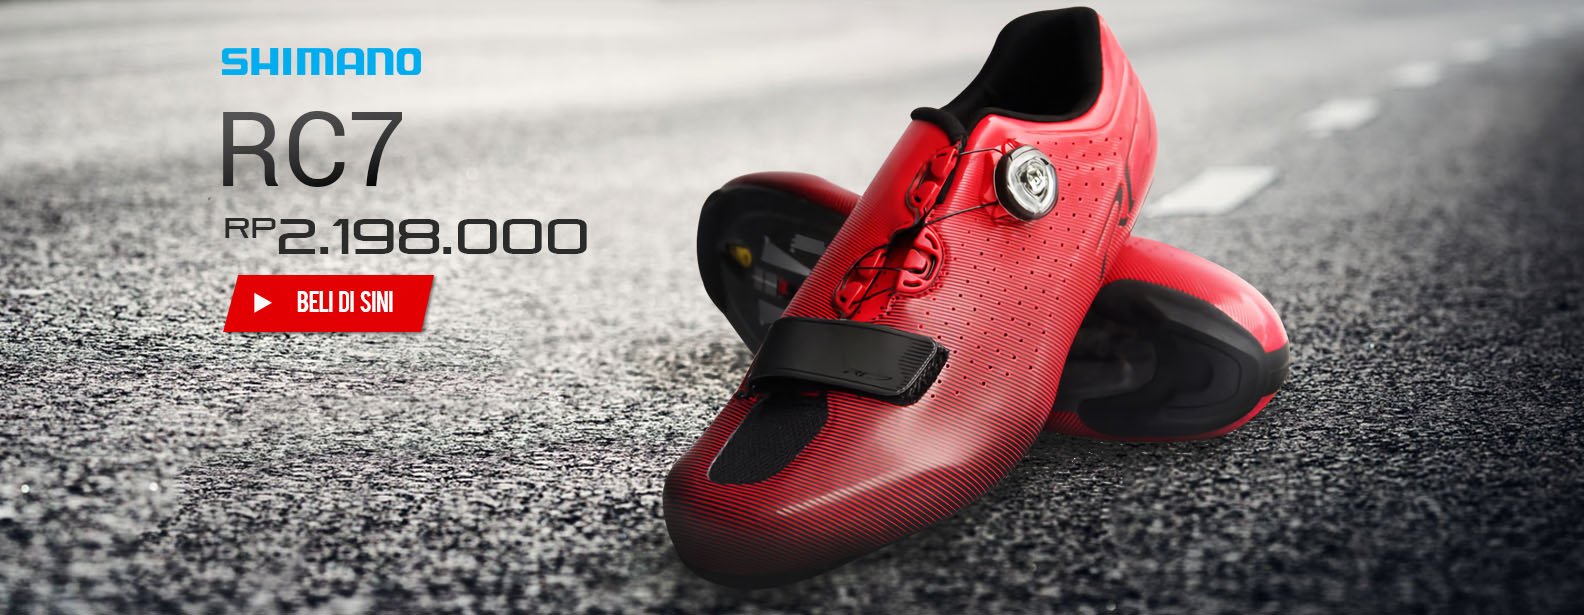 Shimano Sepatu Sepeda Road Competition RC7 Wide Fit